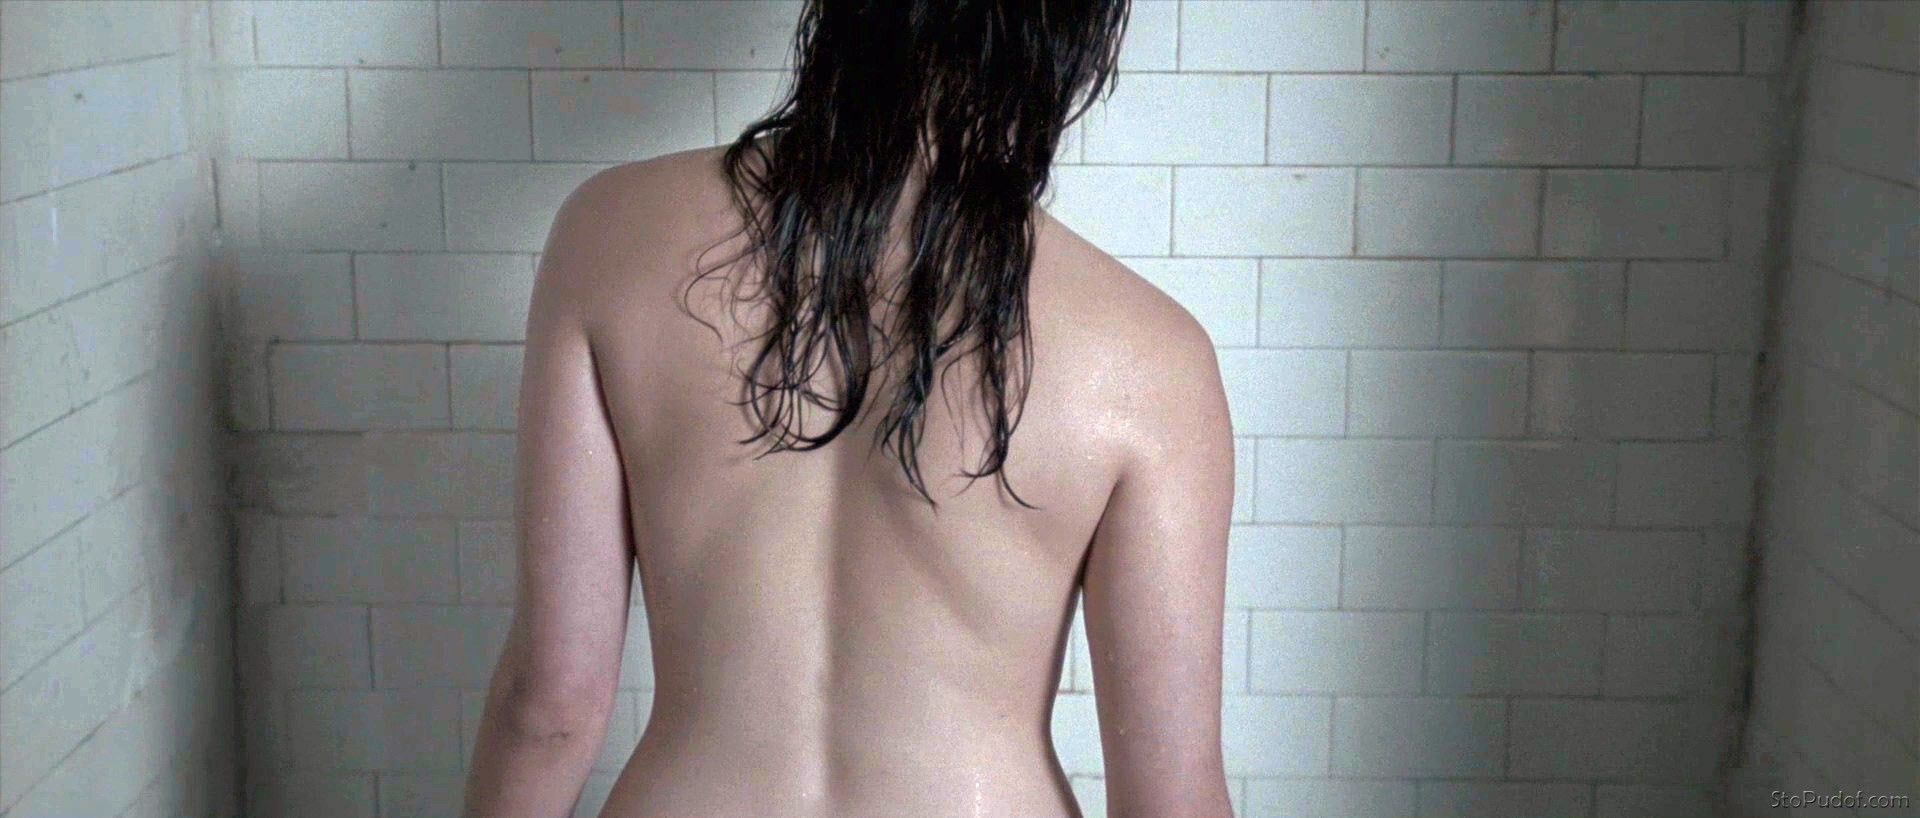 naked Rebecca Hall view - UkPhotoSafari